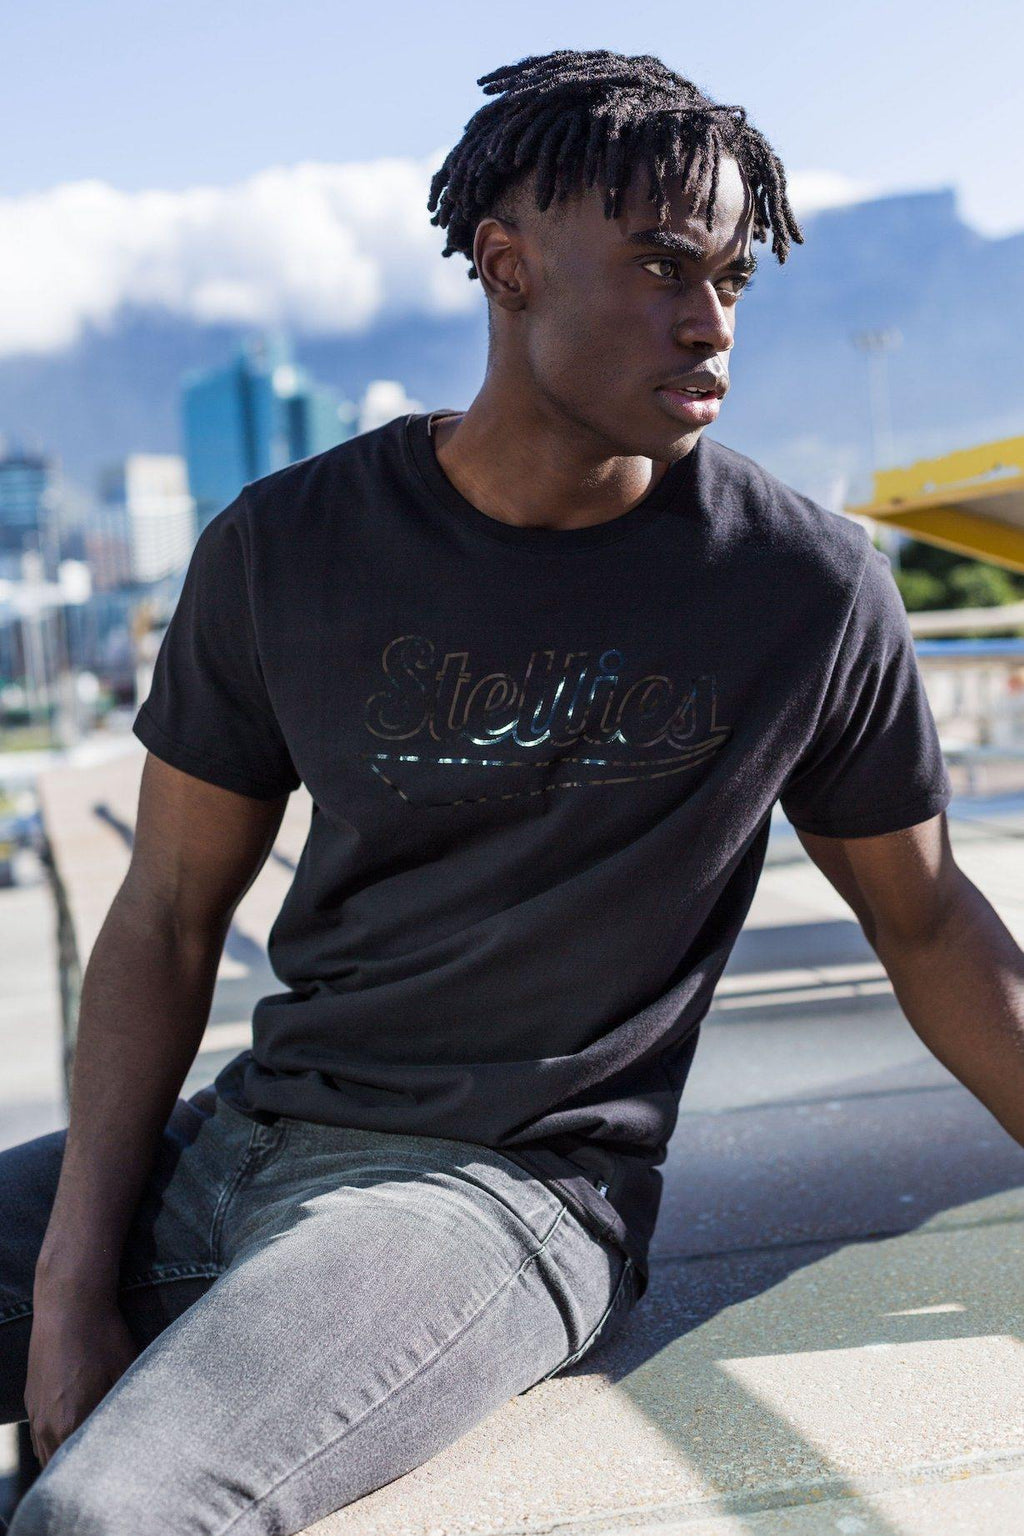 Shadow Crew-Neck Tee In Solid Black - Stellies Authentic Clothing